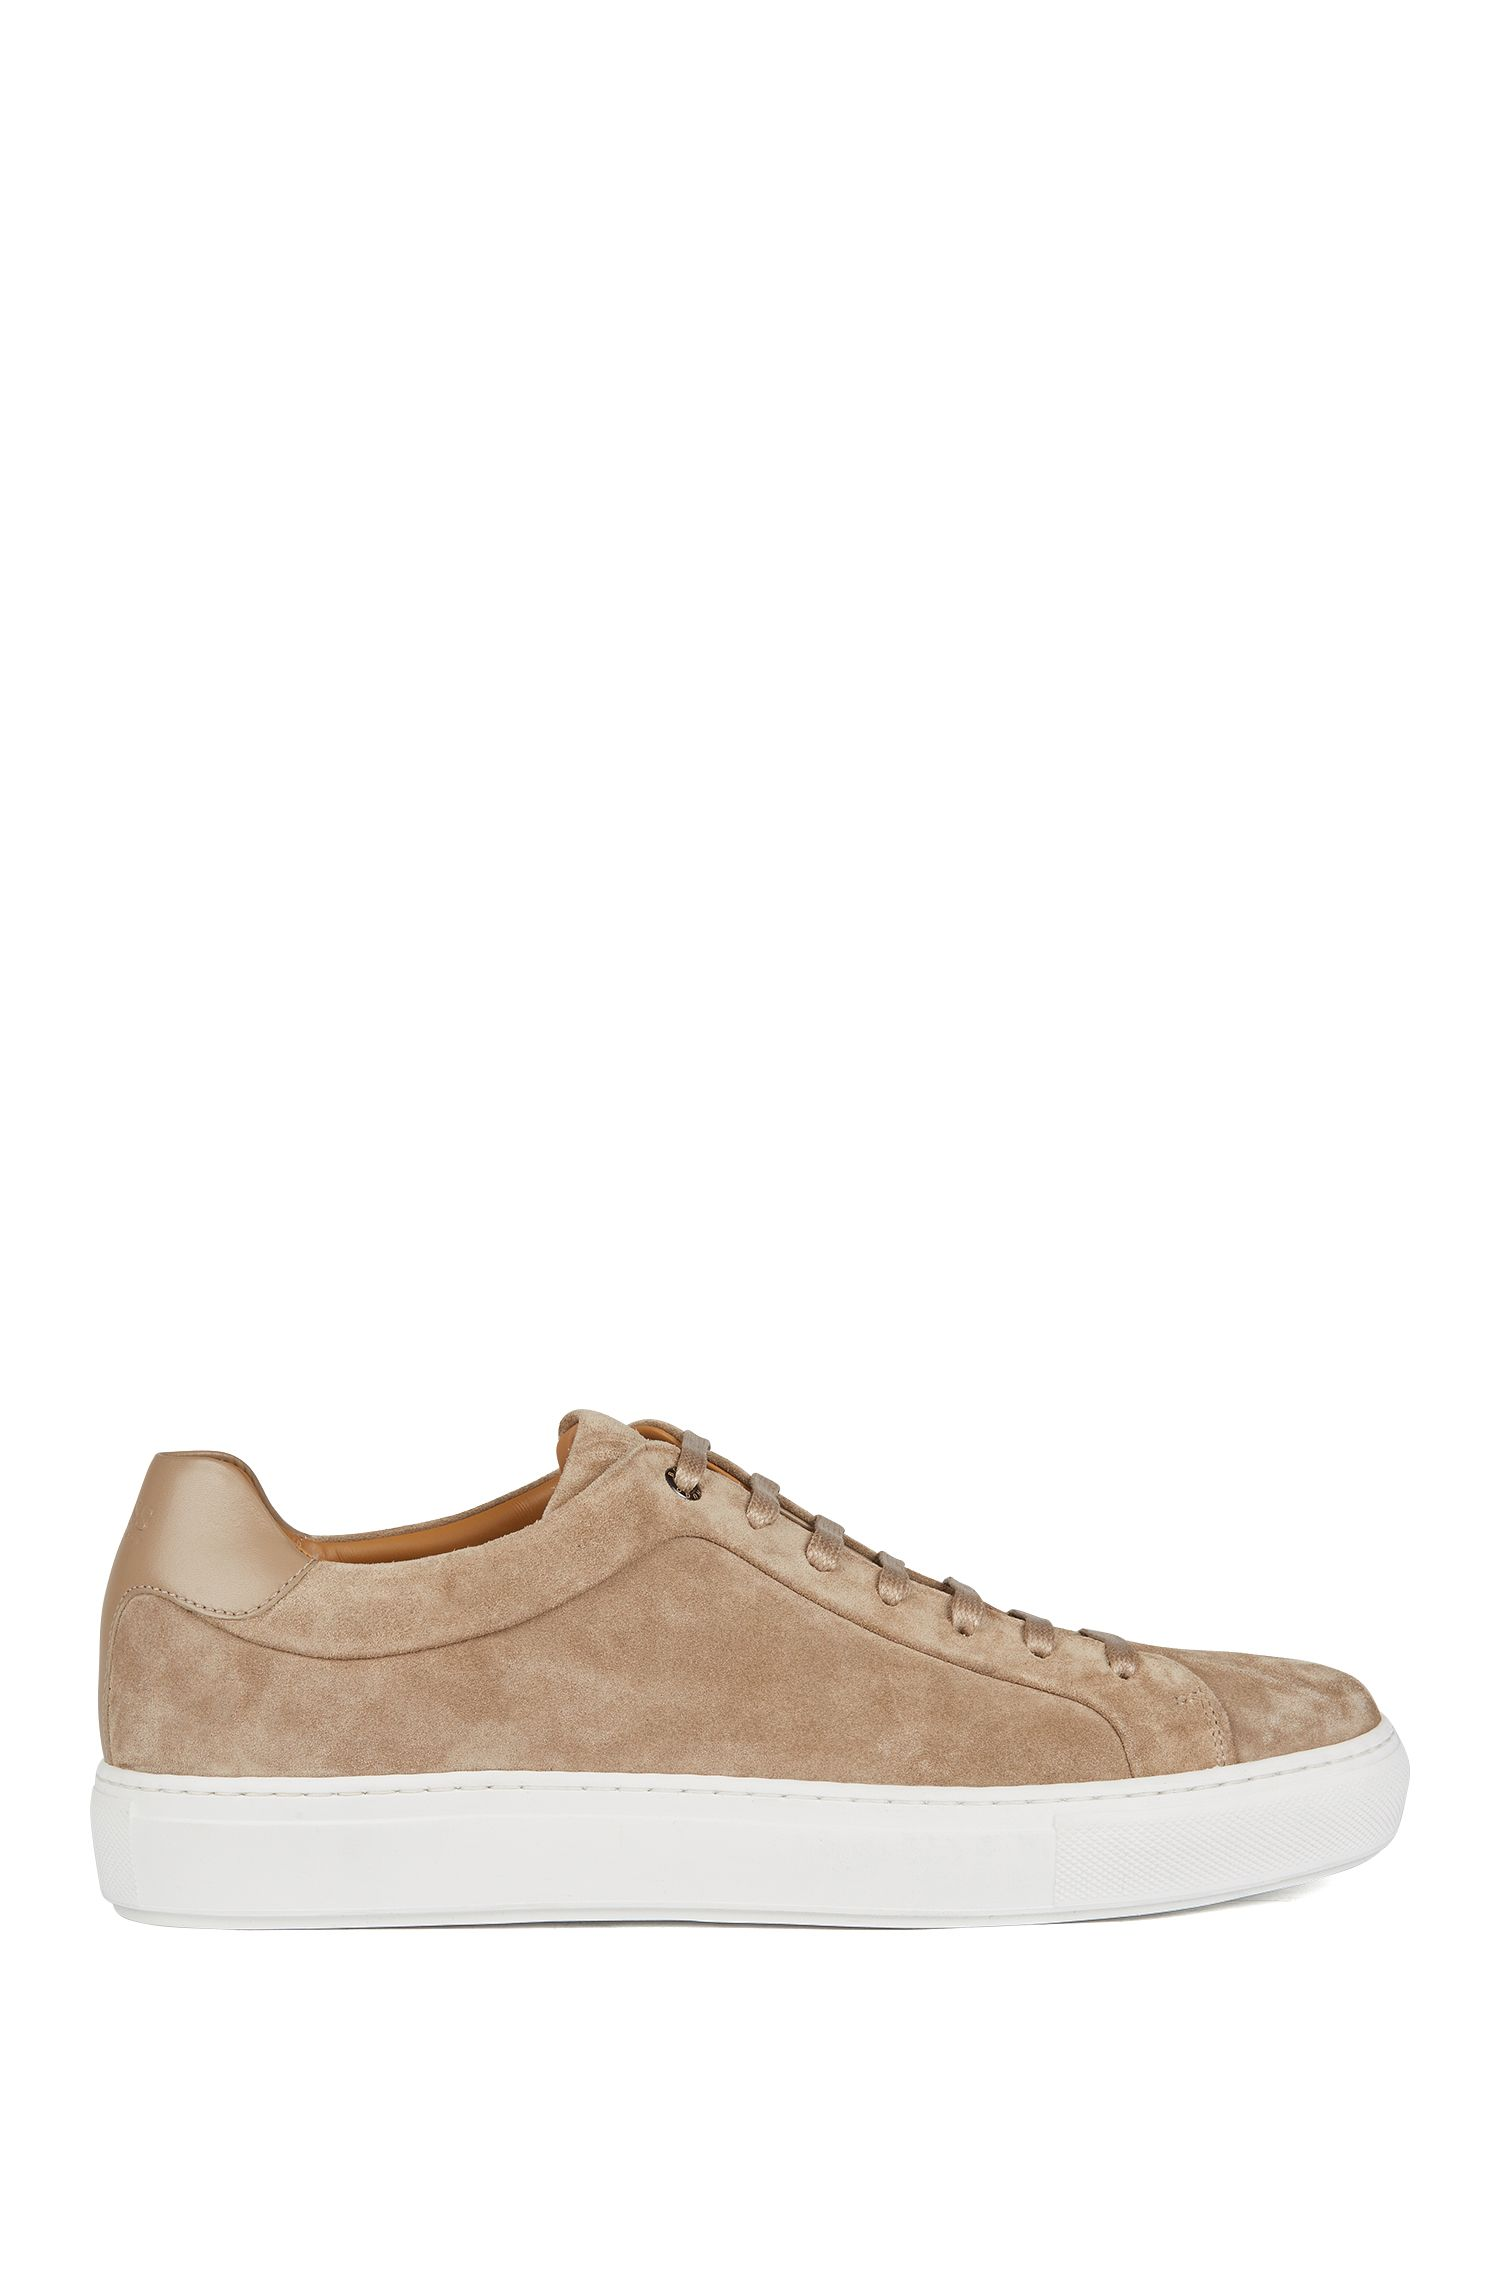 Trainers in Italian suede with cognac leather lining, Beige